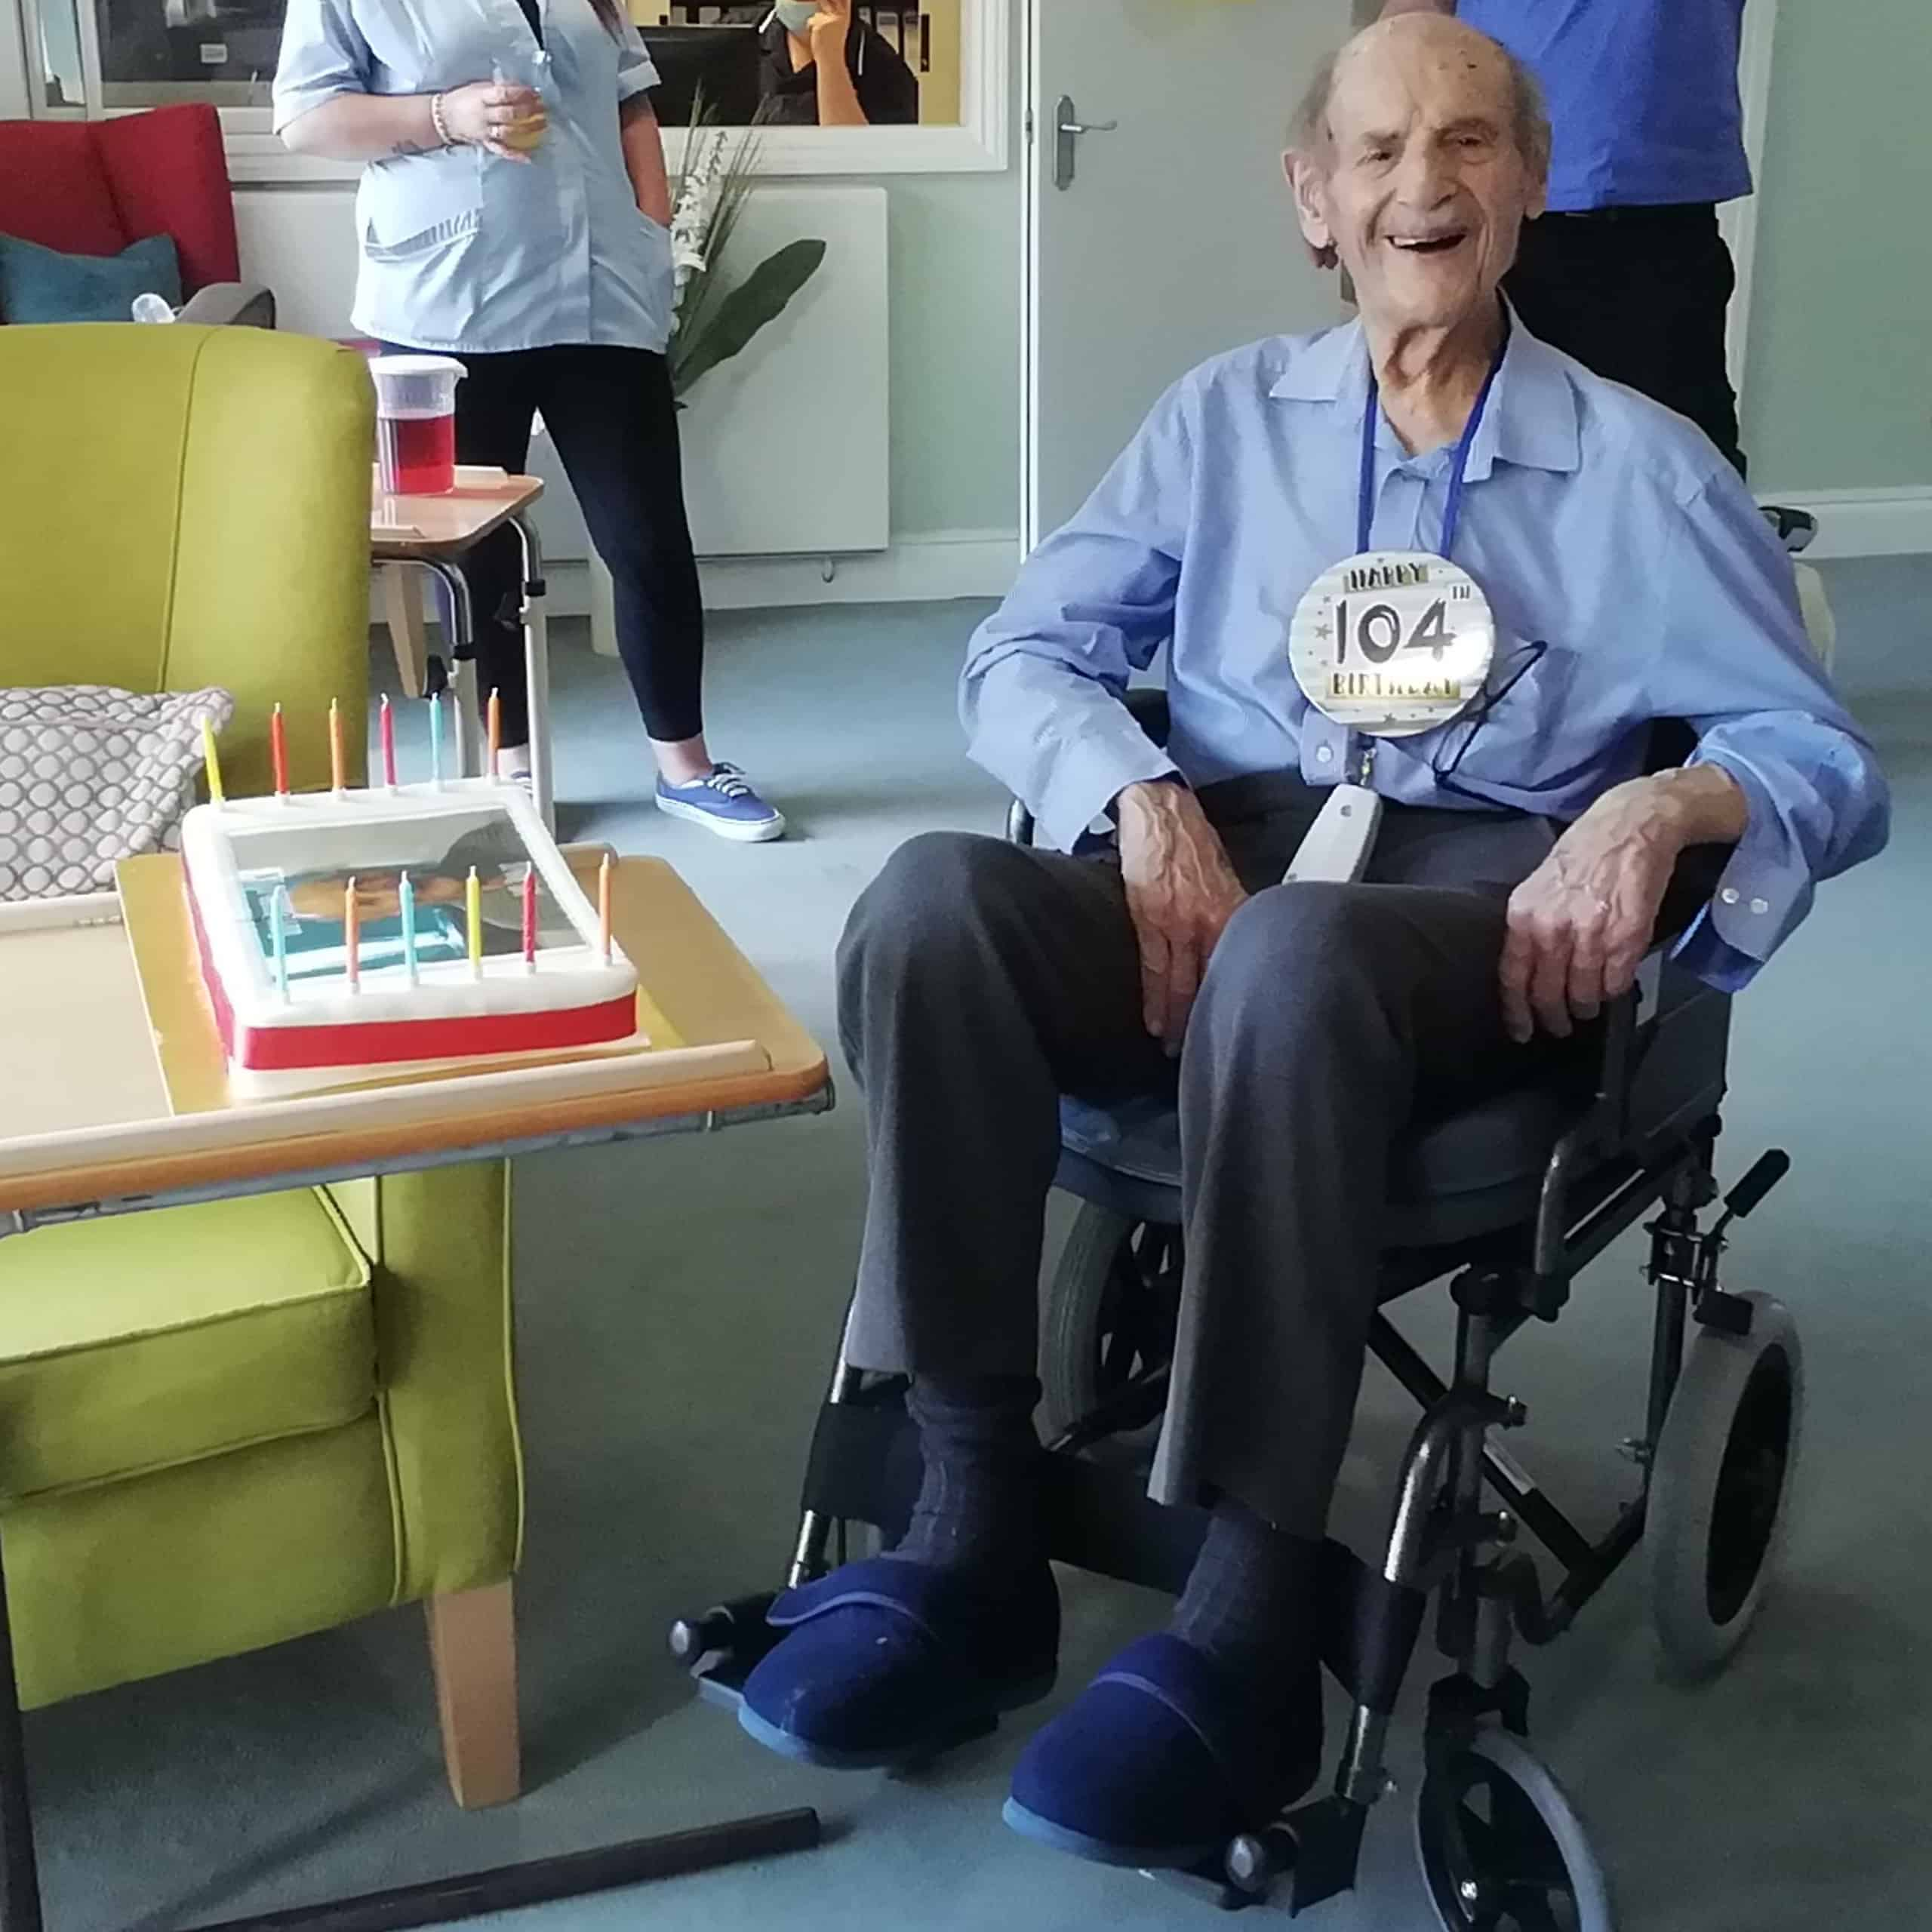 Patcham Nursing Home resident Len Goldman with his personalised cake on his 104th birthday.